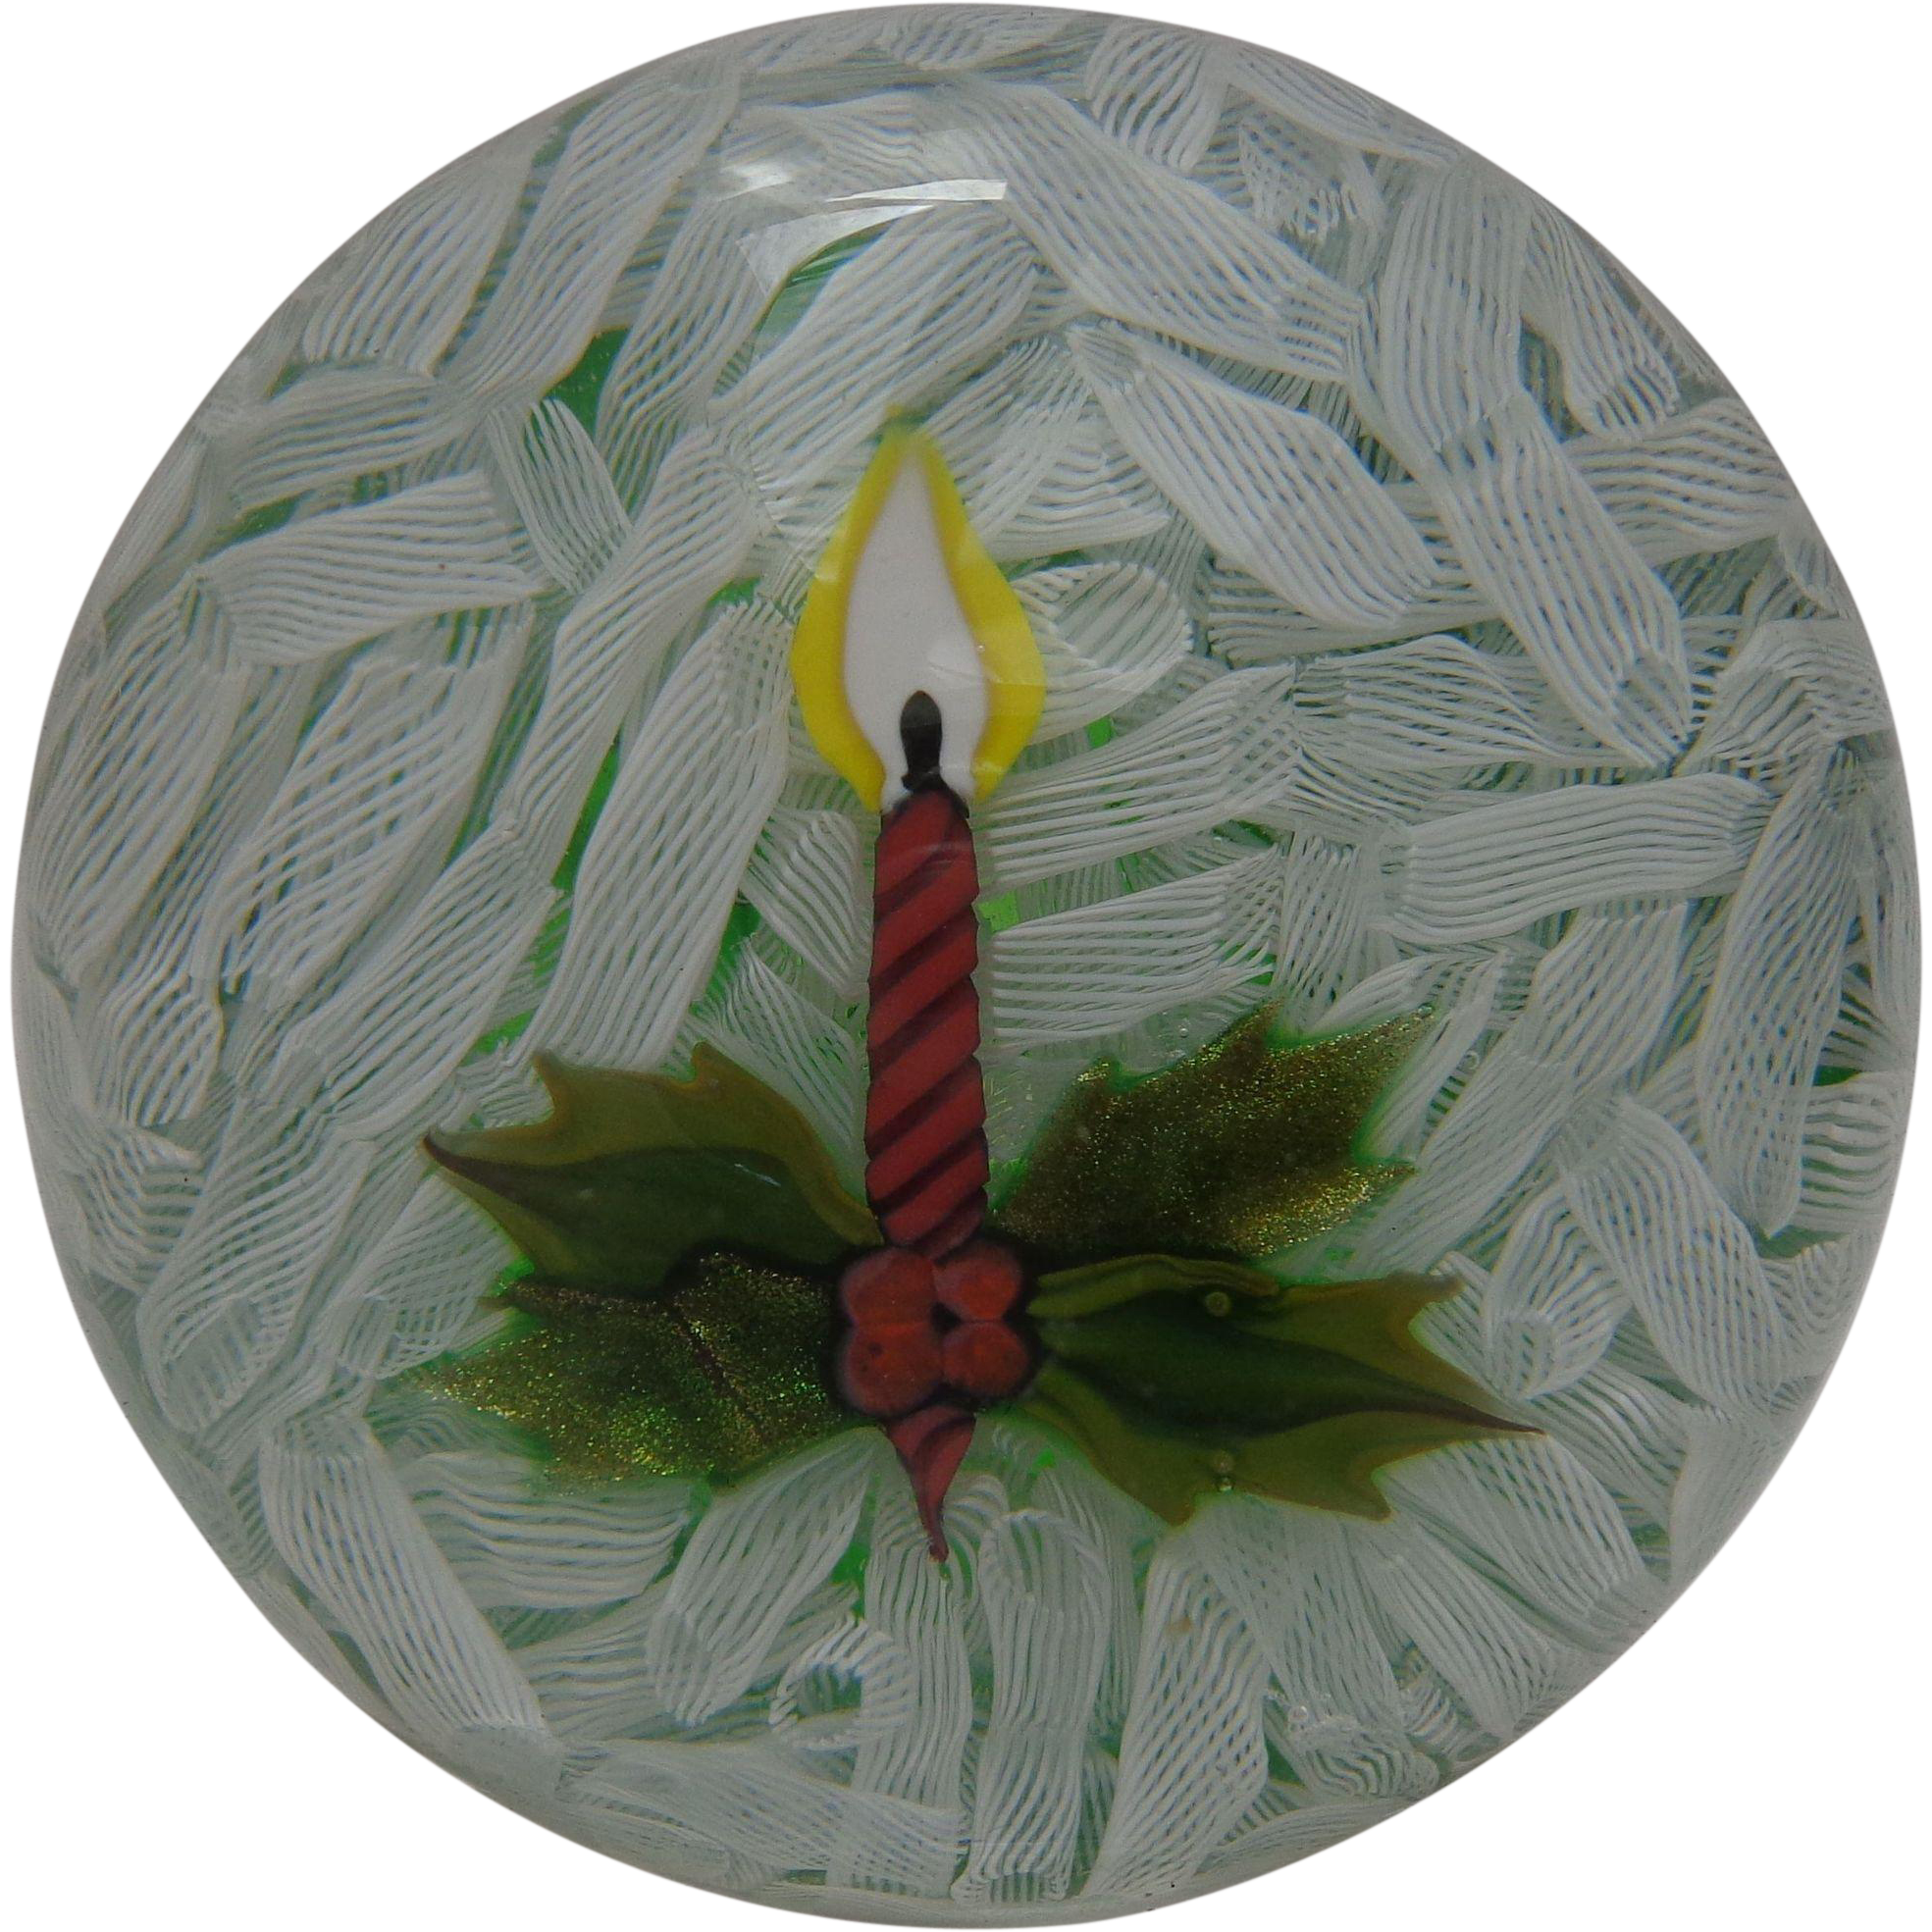 Perthshire Paperweight 1980 Christmas Candle Paperweight